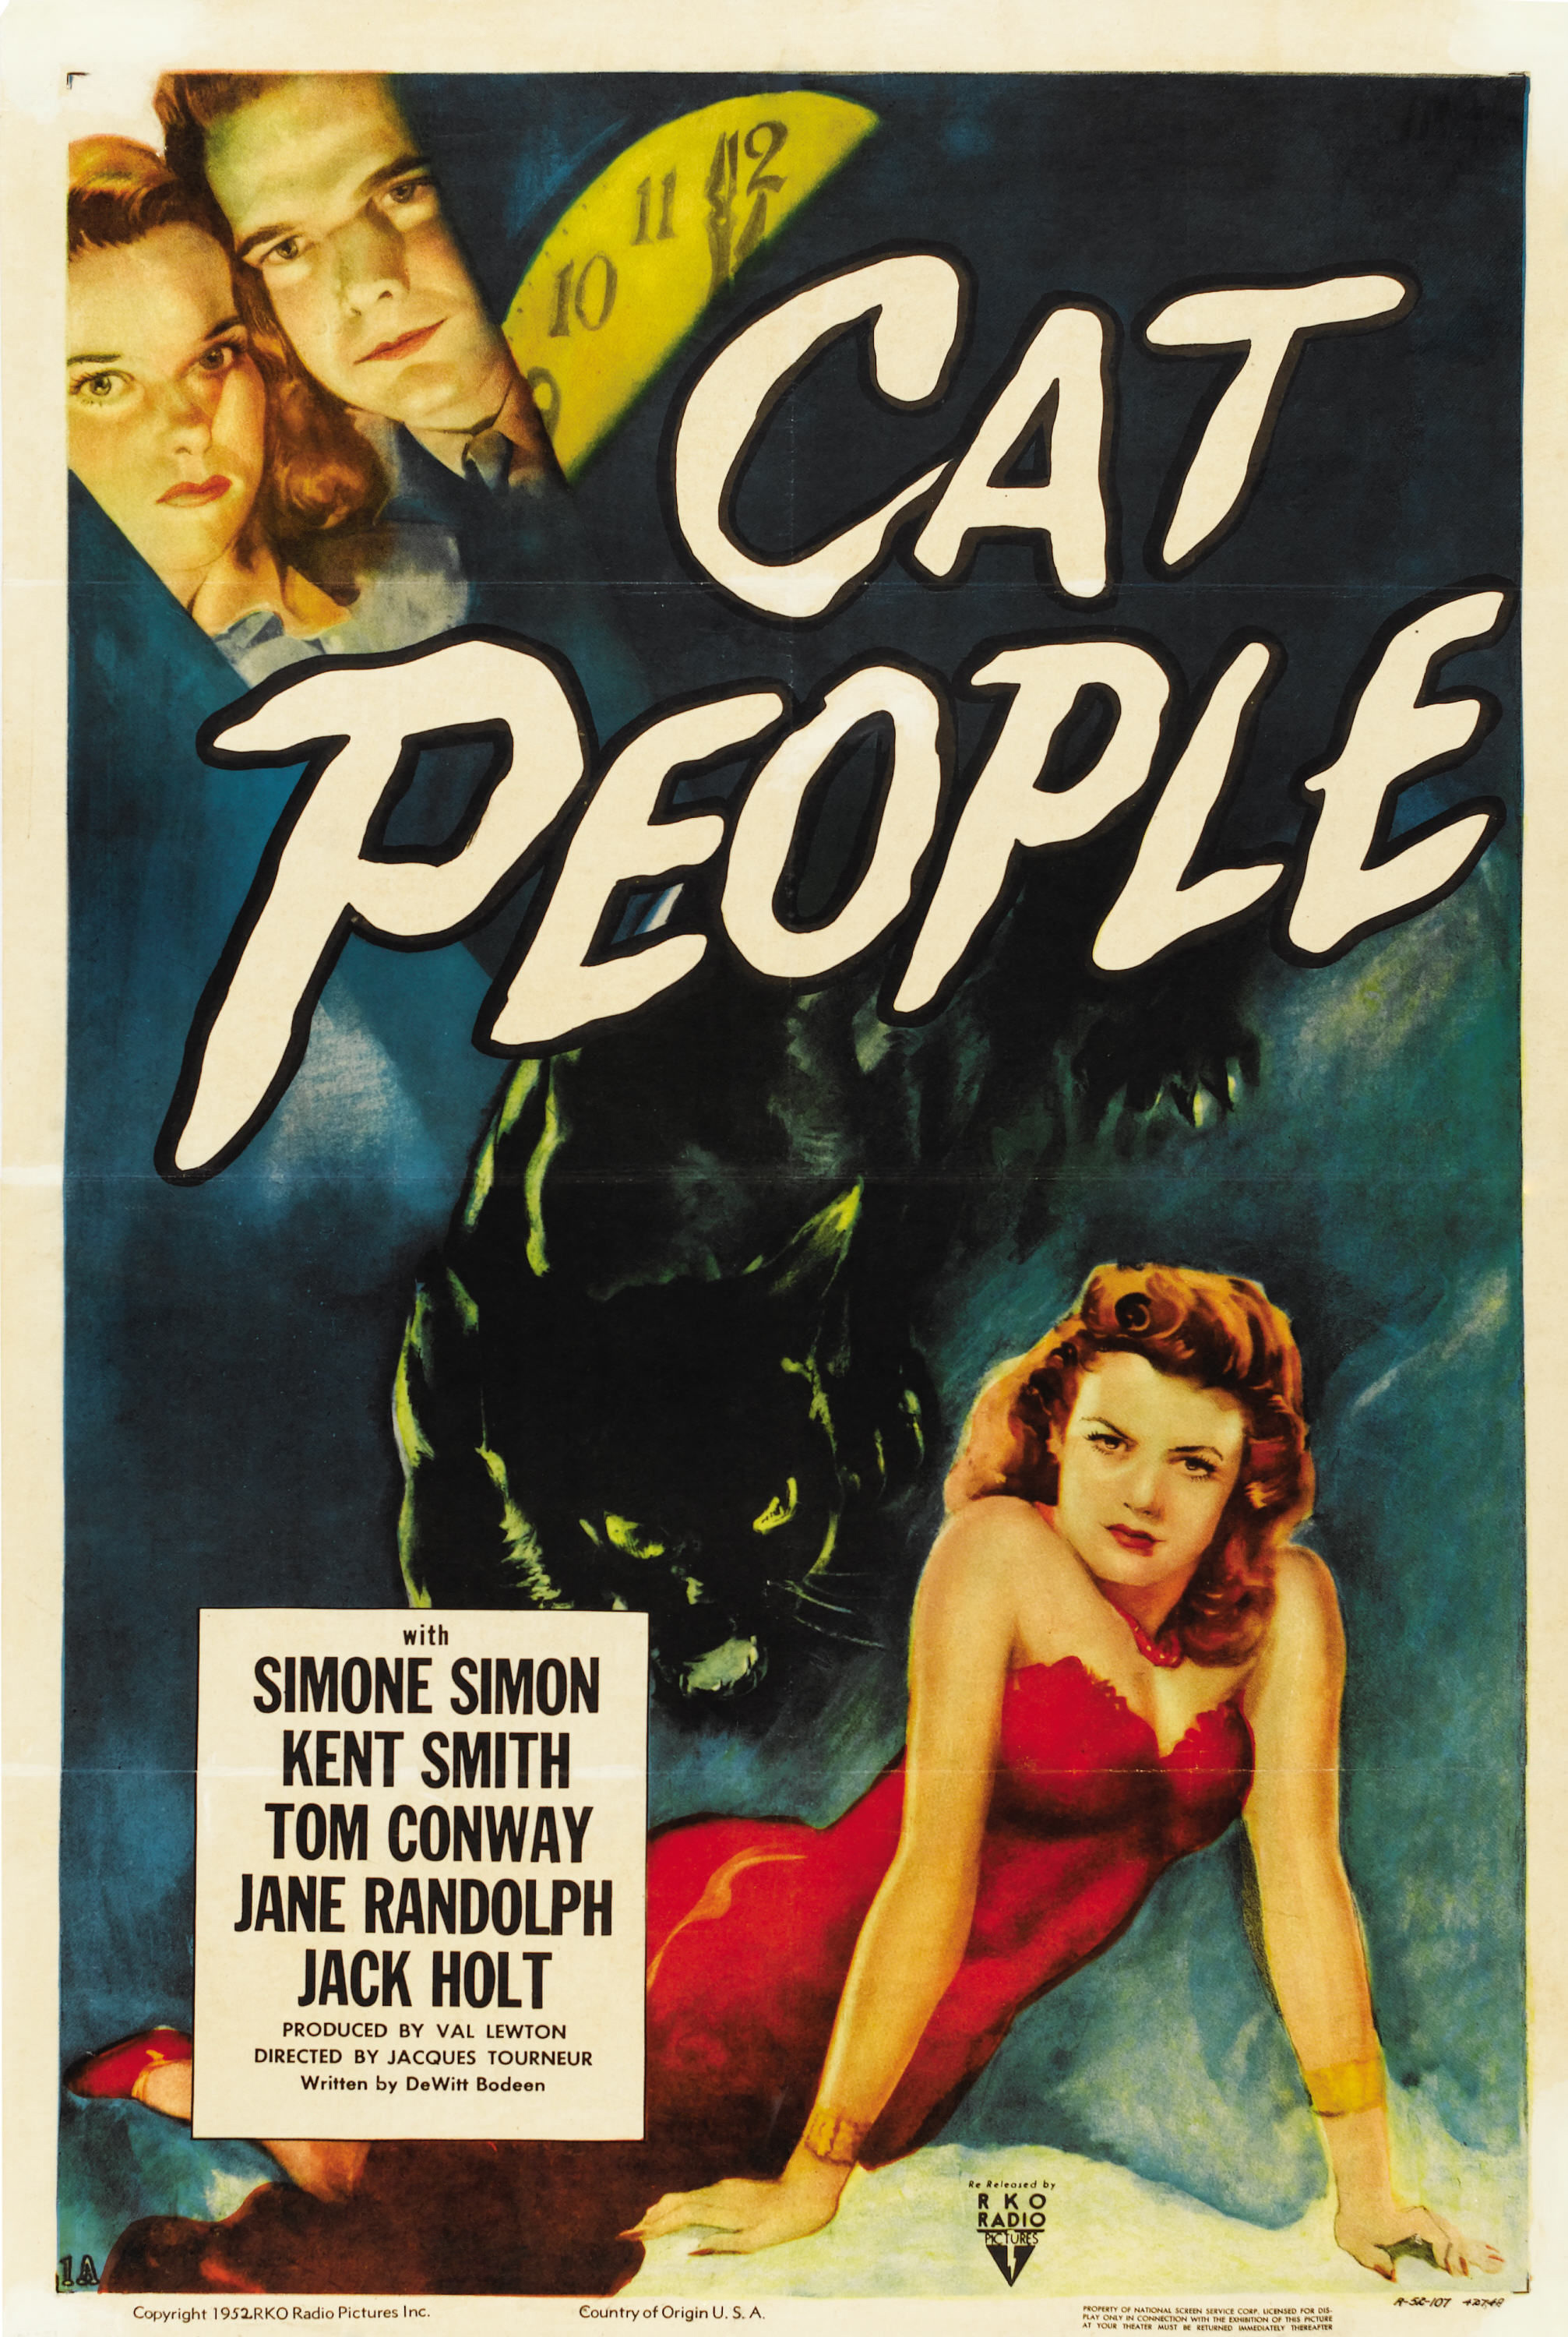 poster_cat_people_1942_04.jpg